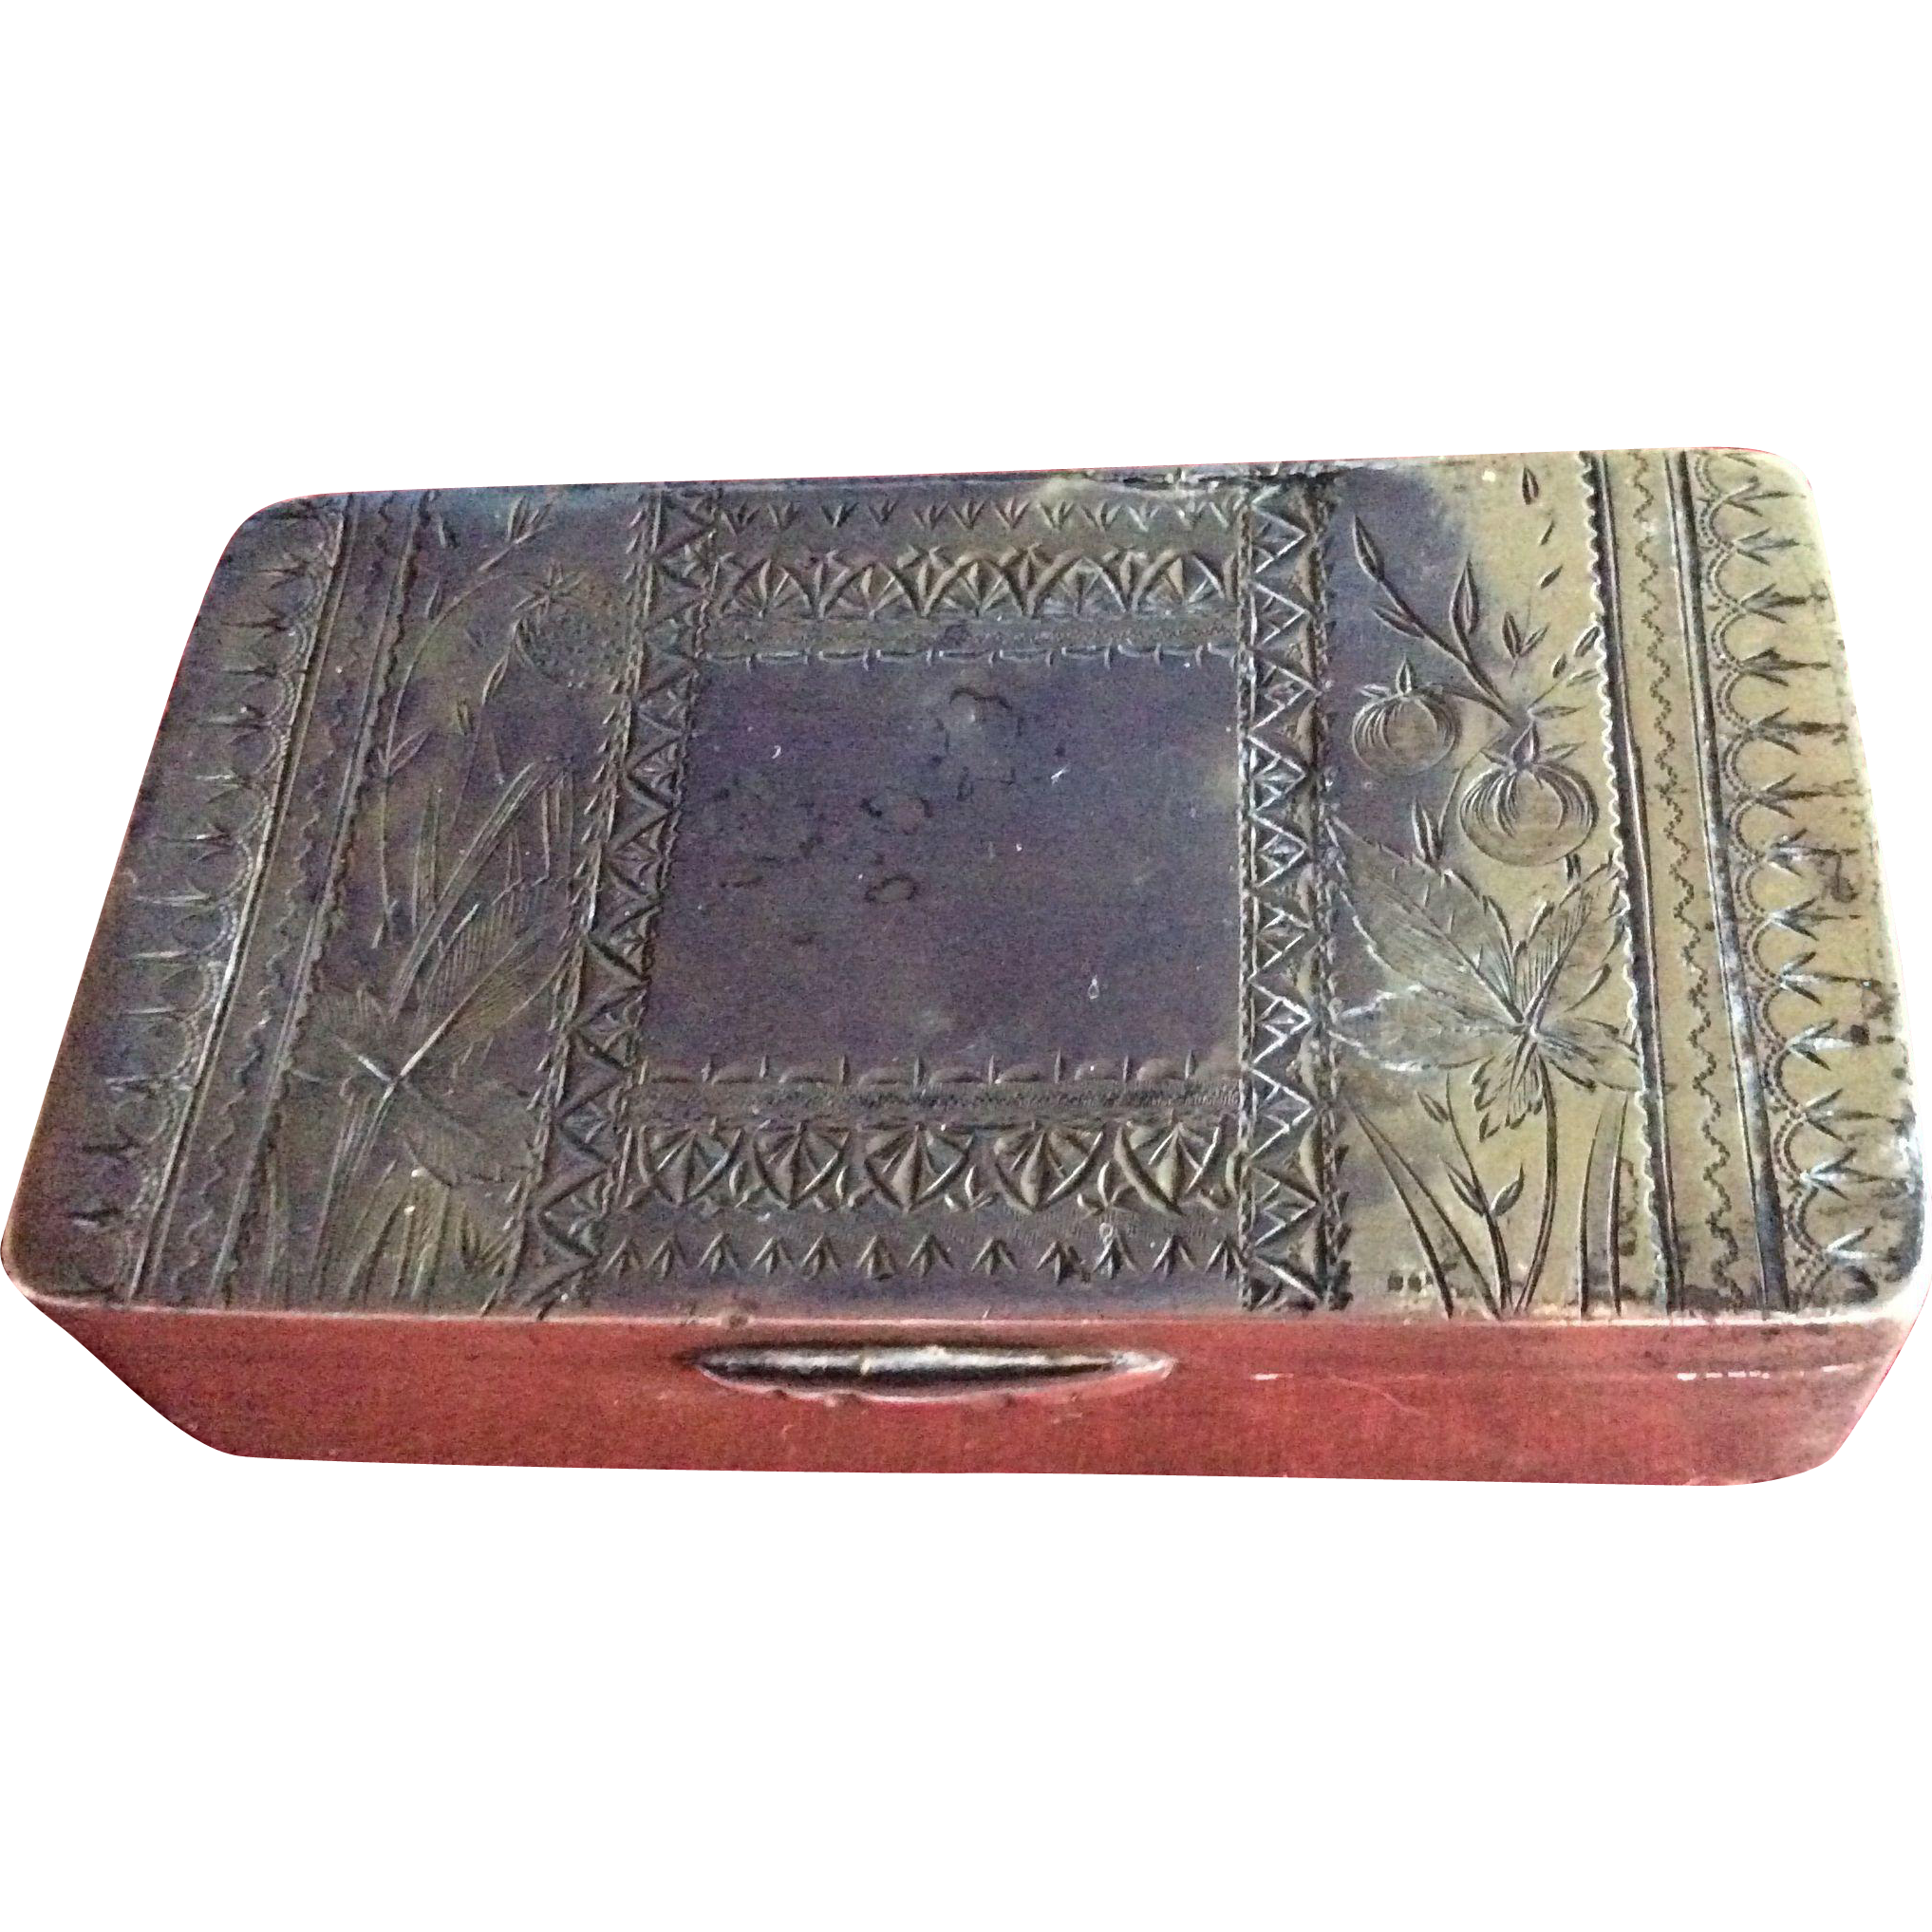 Ultimate Aesthetic engraved Sterling silver Box with Bird and Fruit